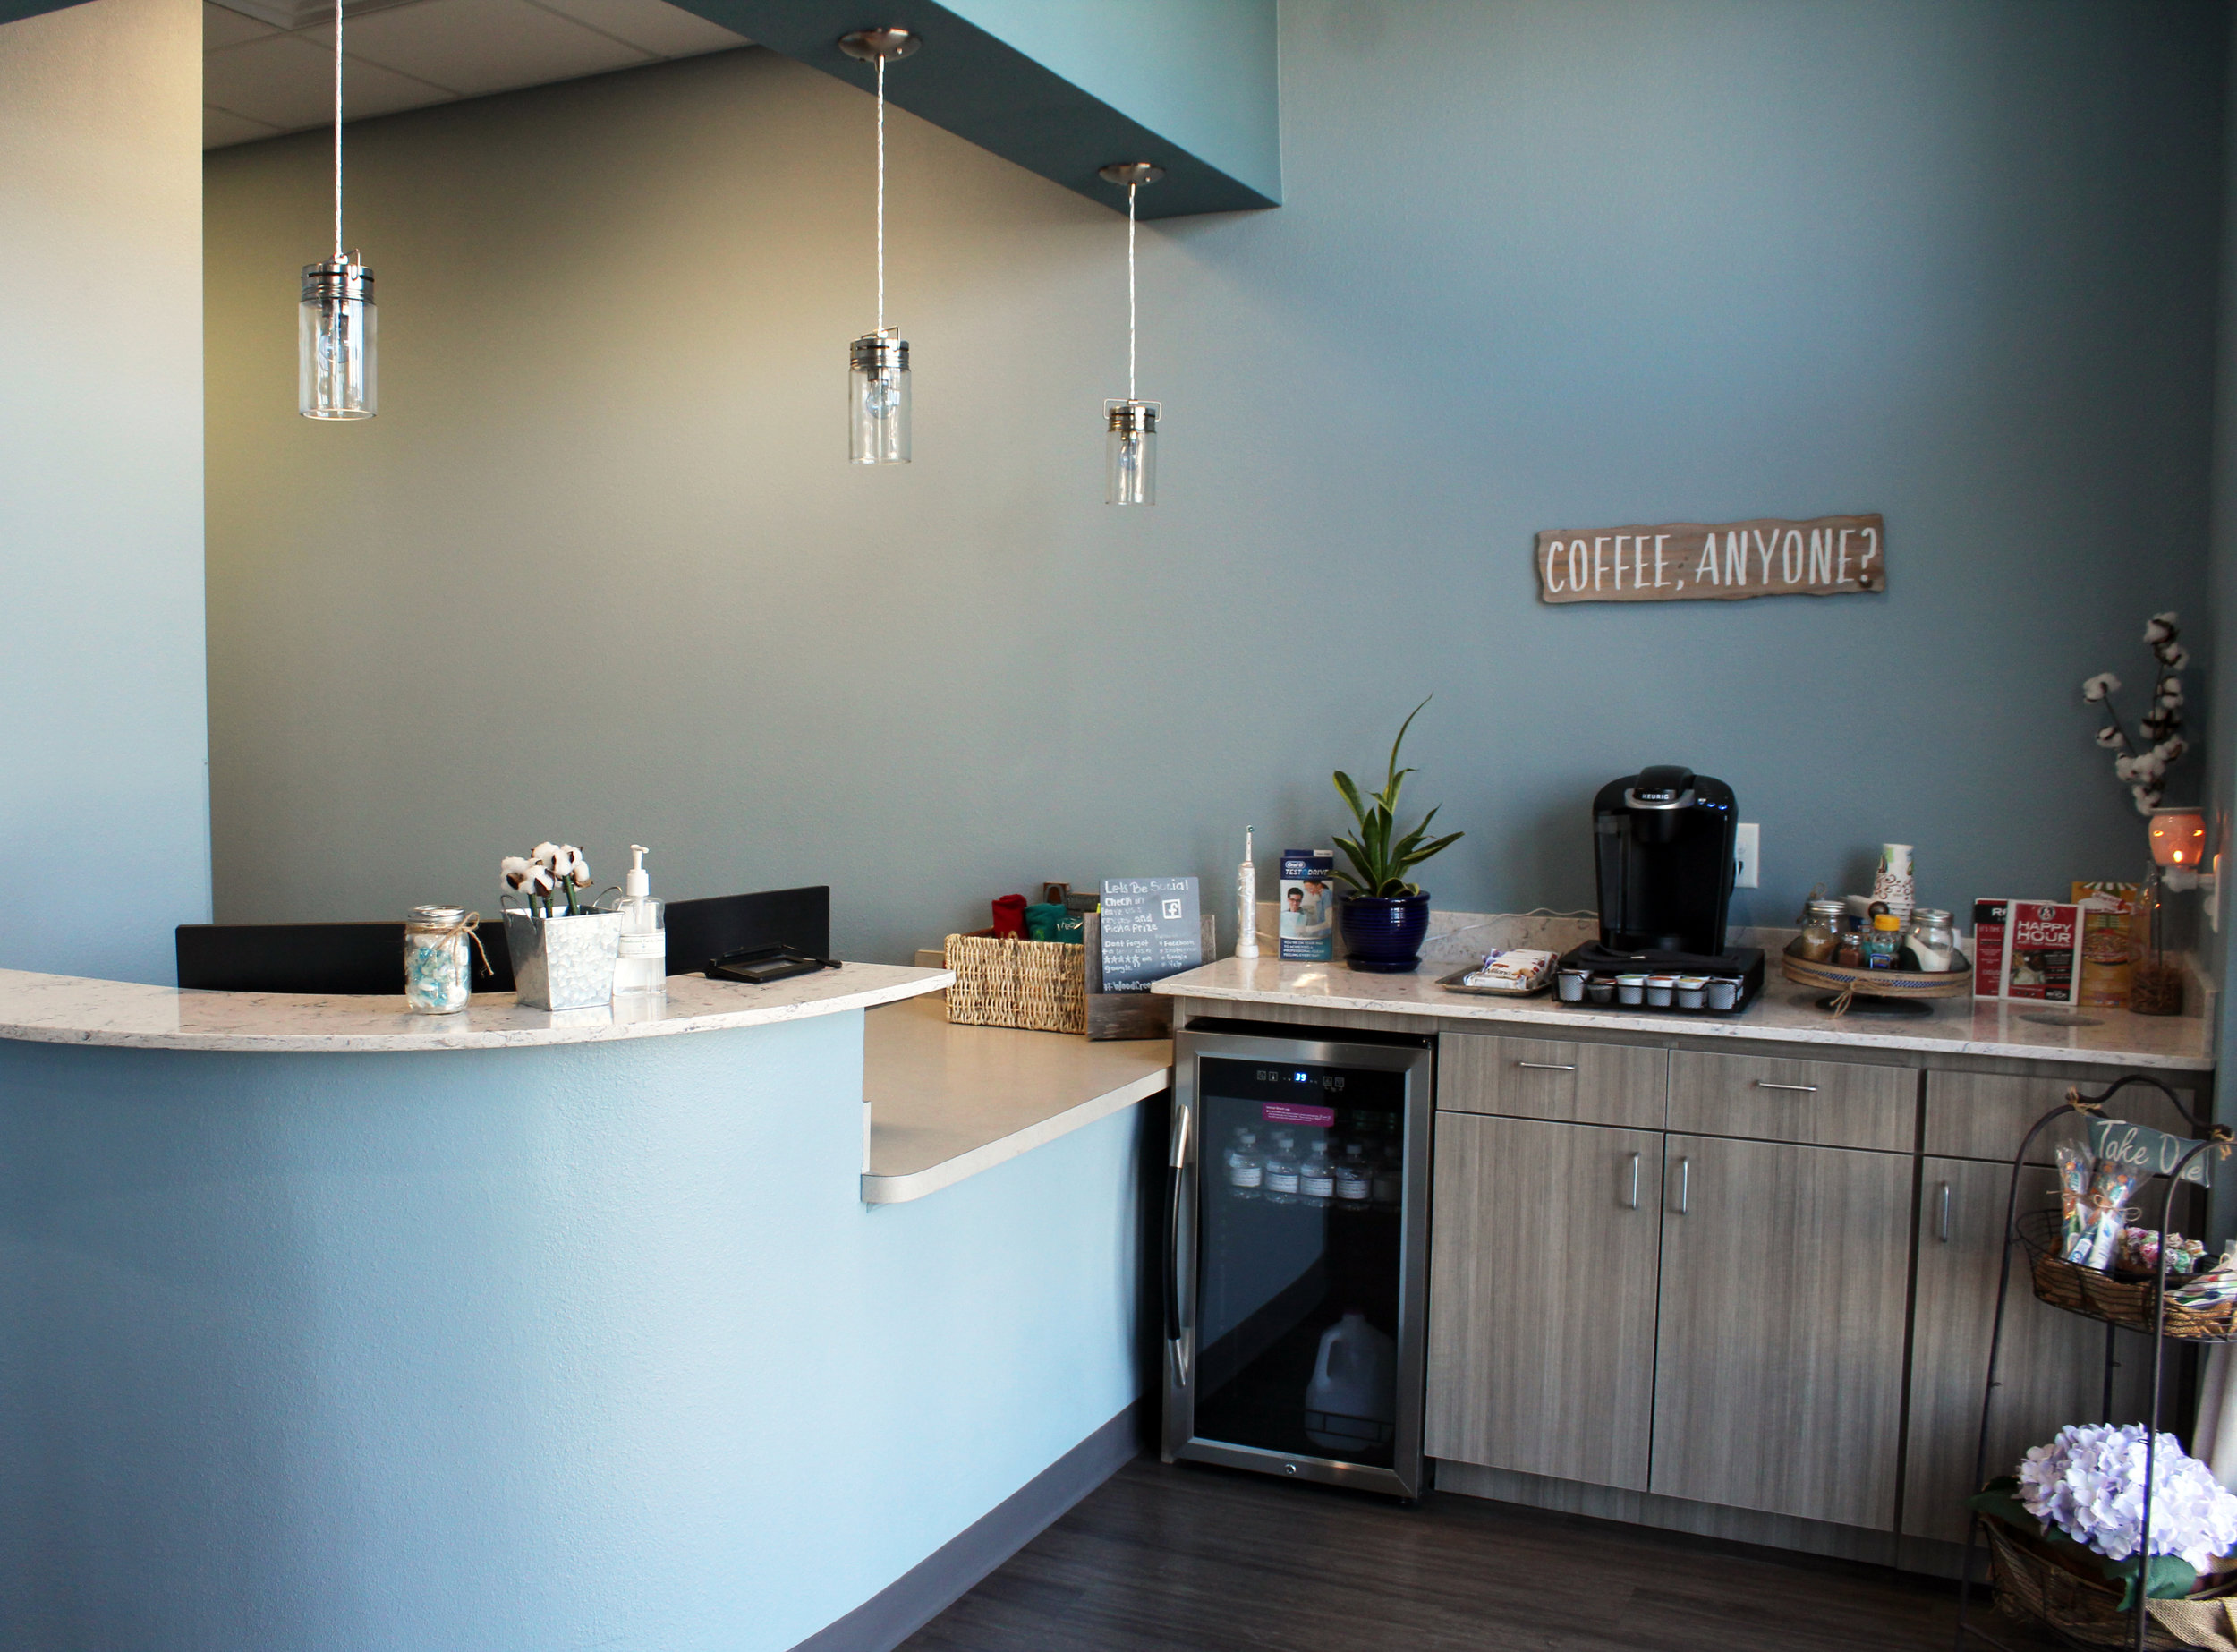 Woodcreek Family Dental accepts all major insurance plans and offers an in-house membership plan for those who don't have dental insurance.